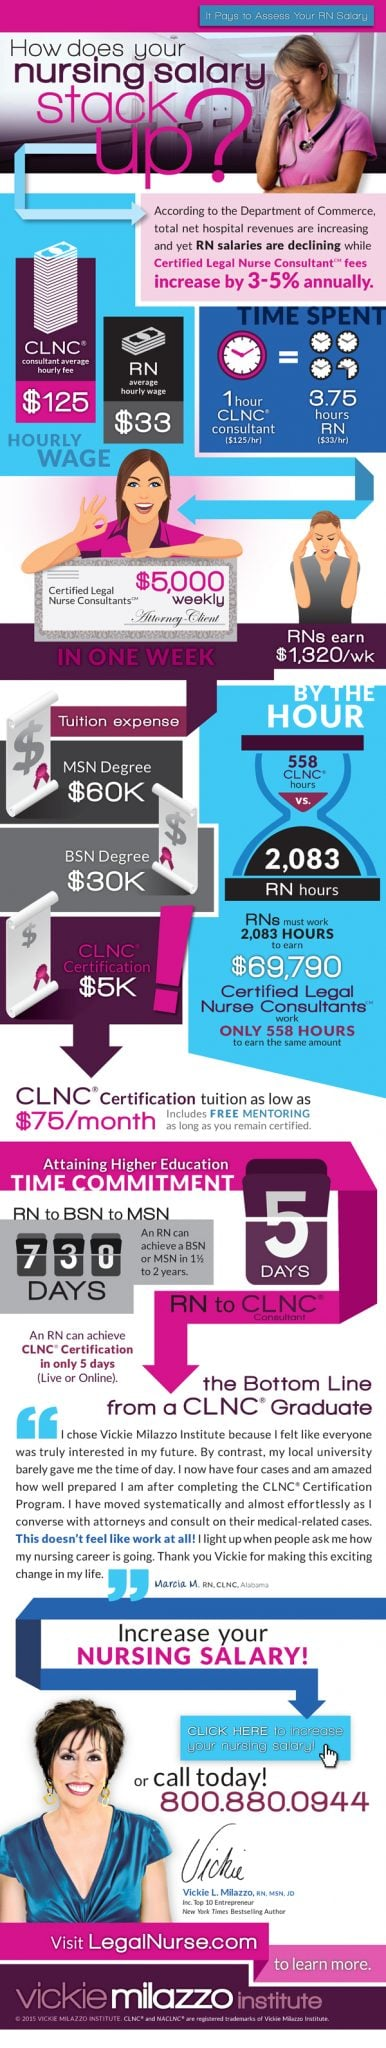 How Does Your RN Salary Stack Up Against a Certified Legal